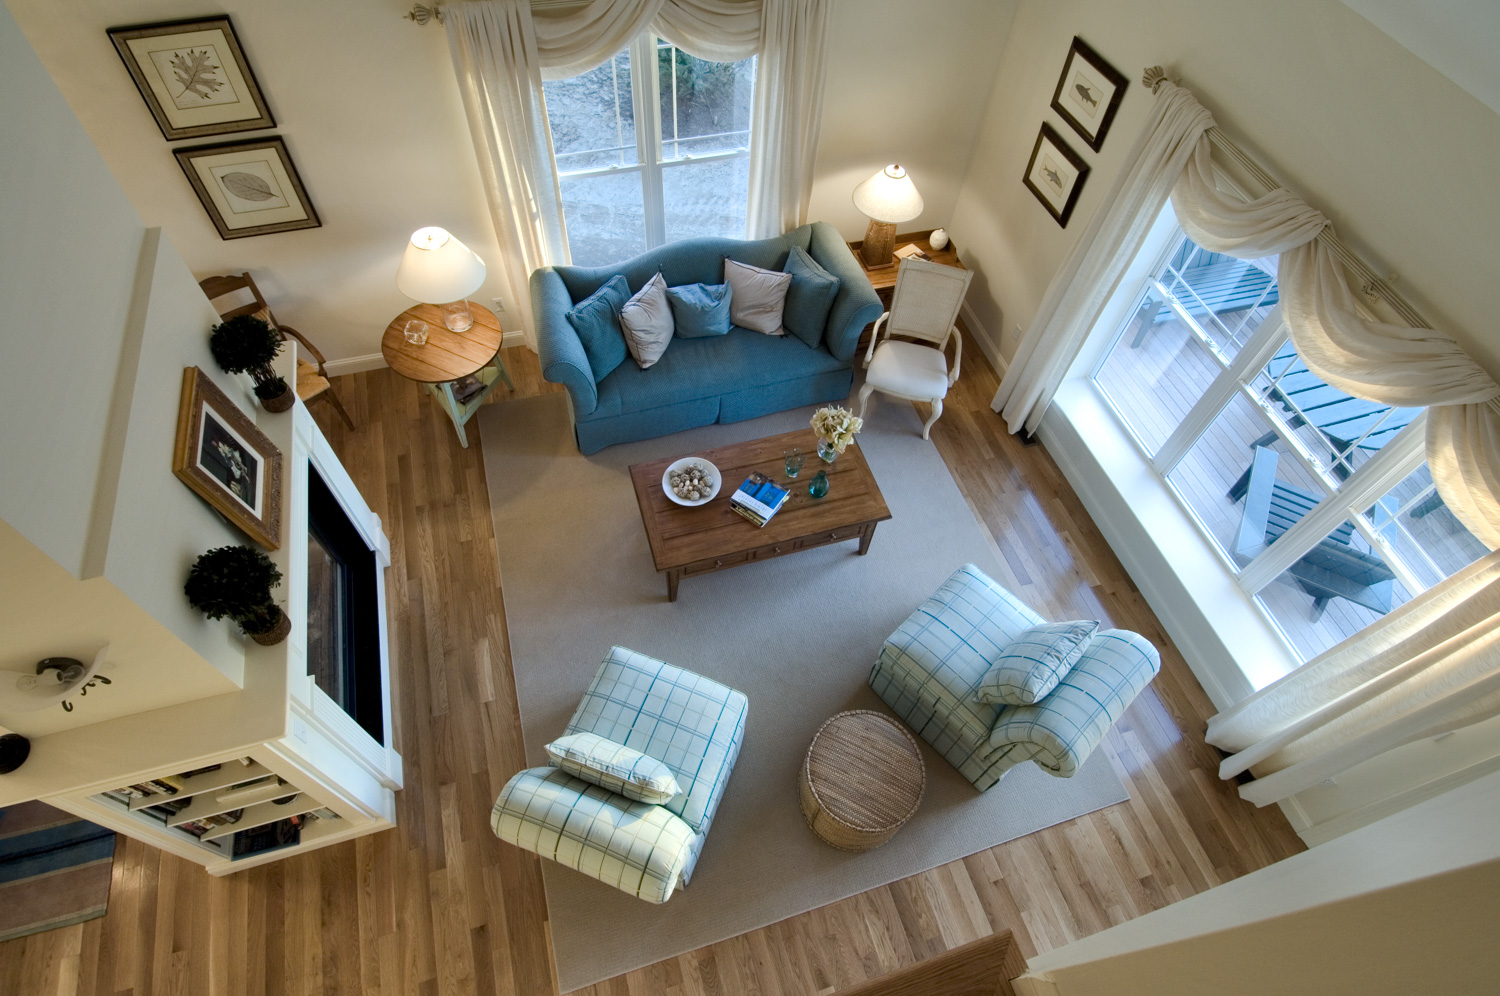 Sky View of Living Room